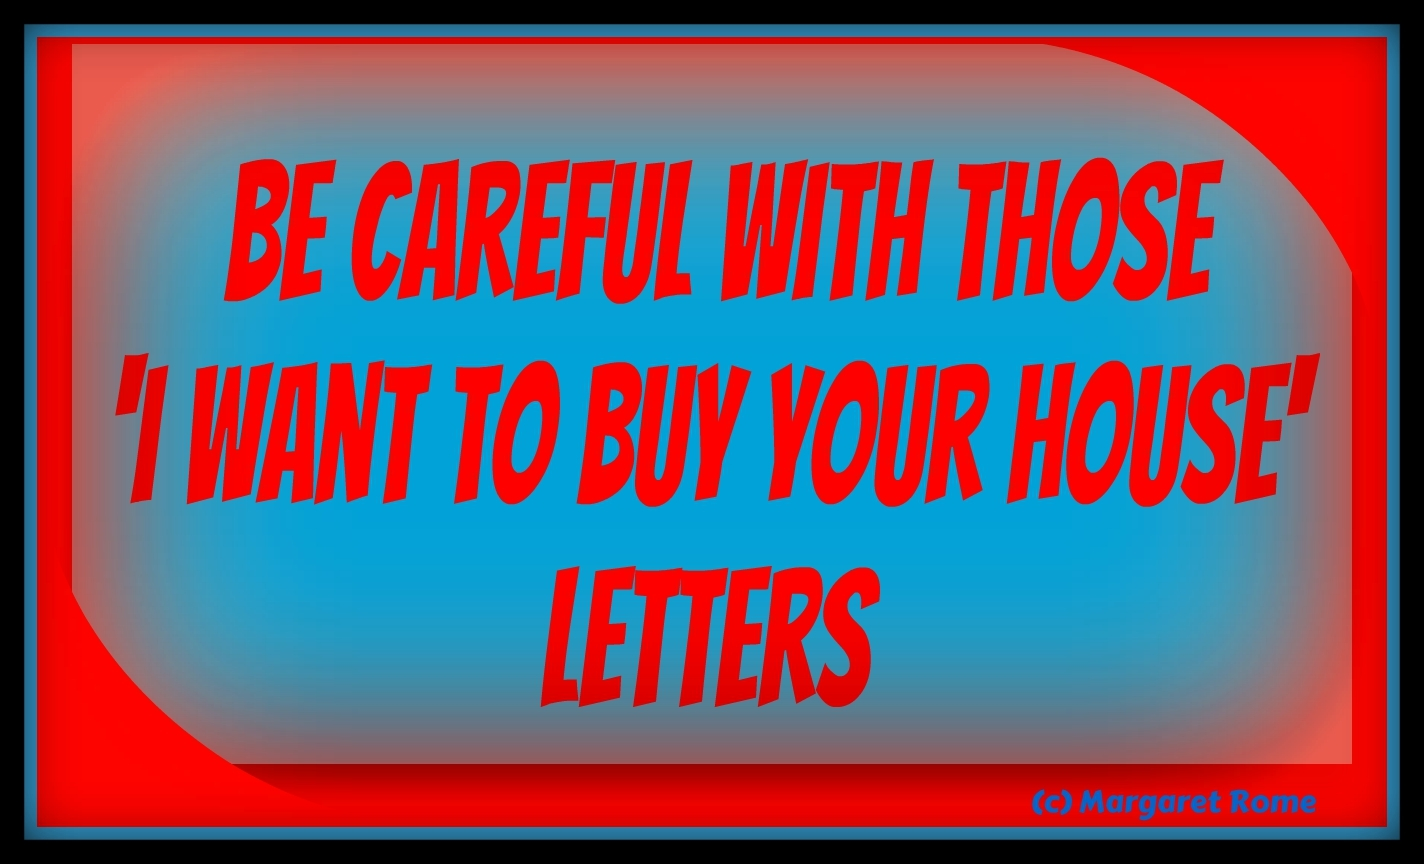 Buy your house letters SCAM